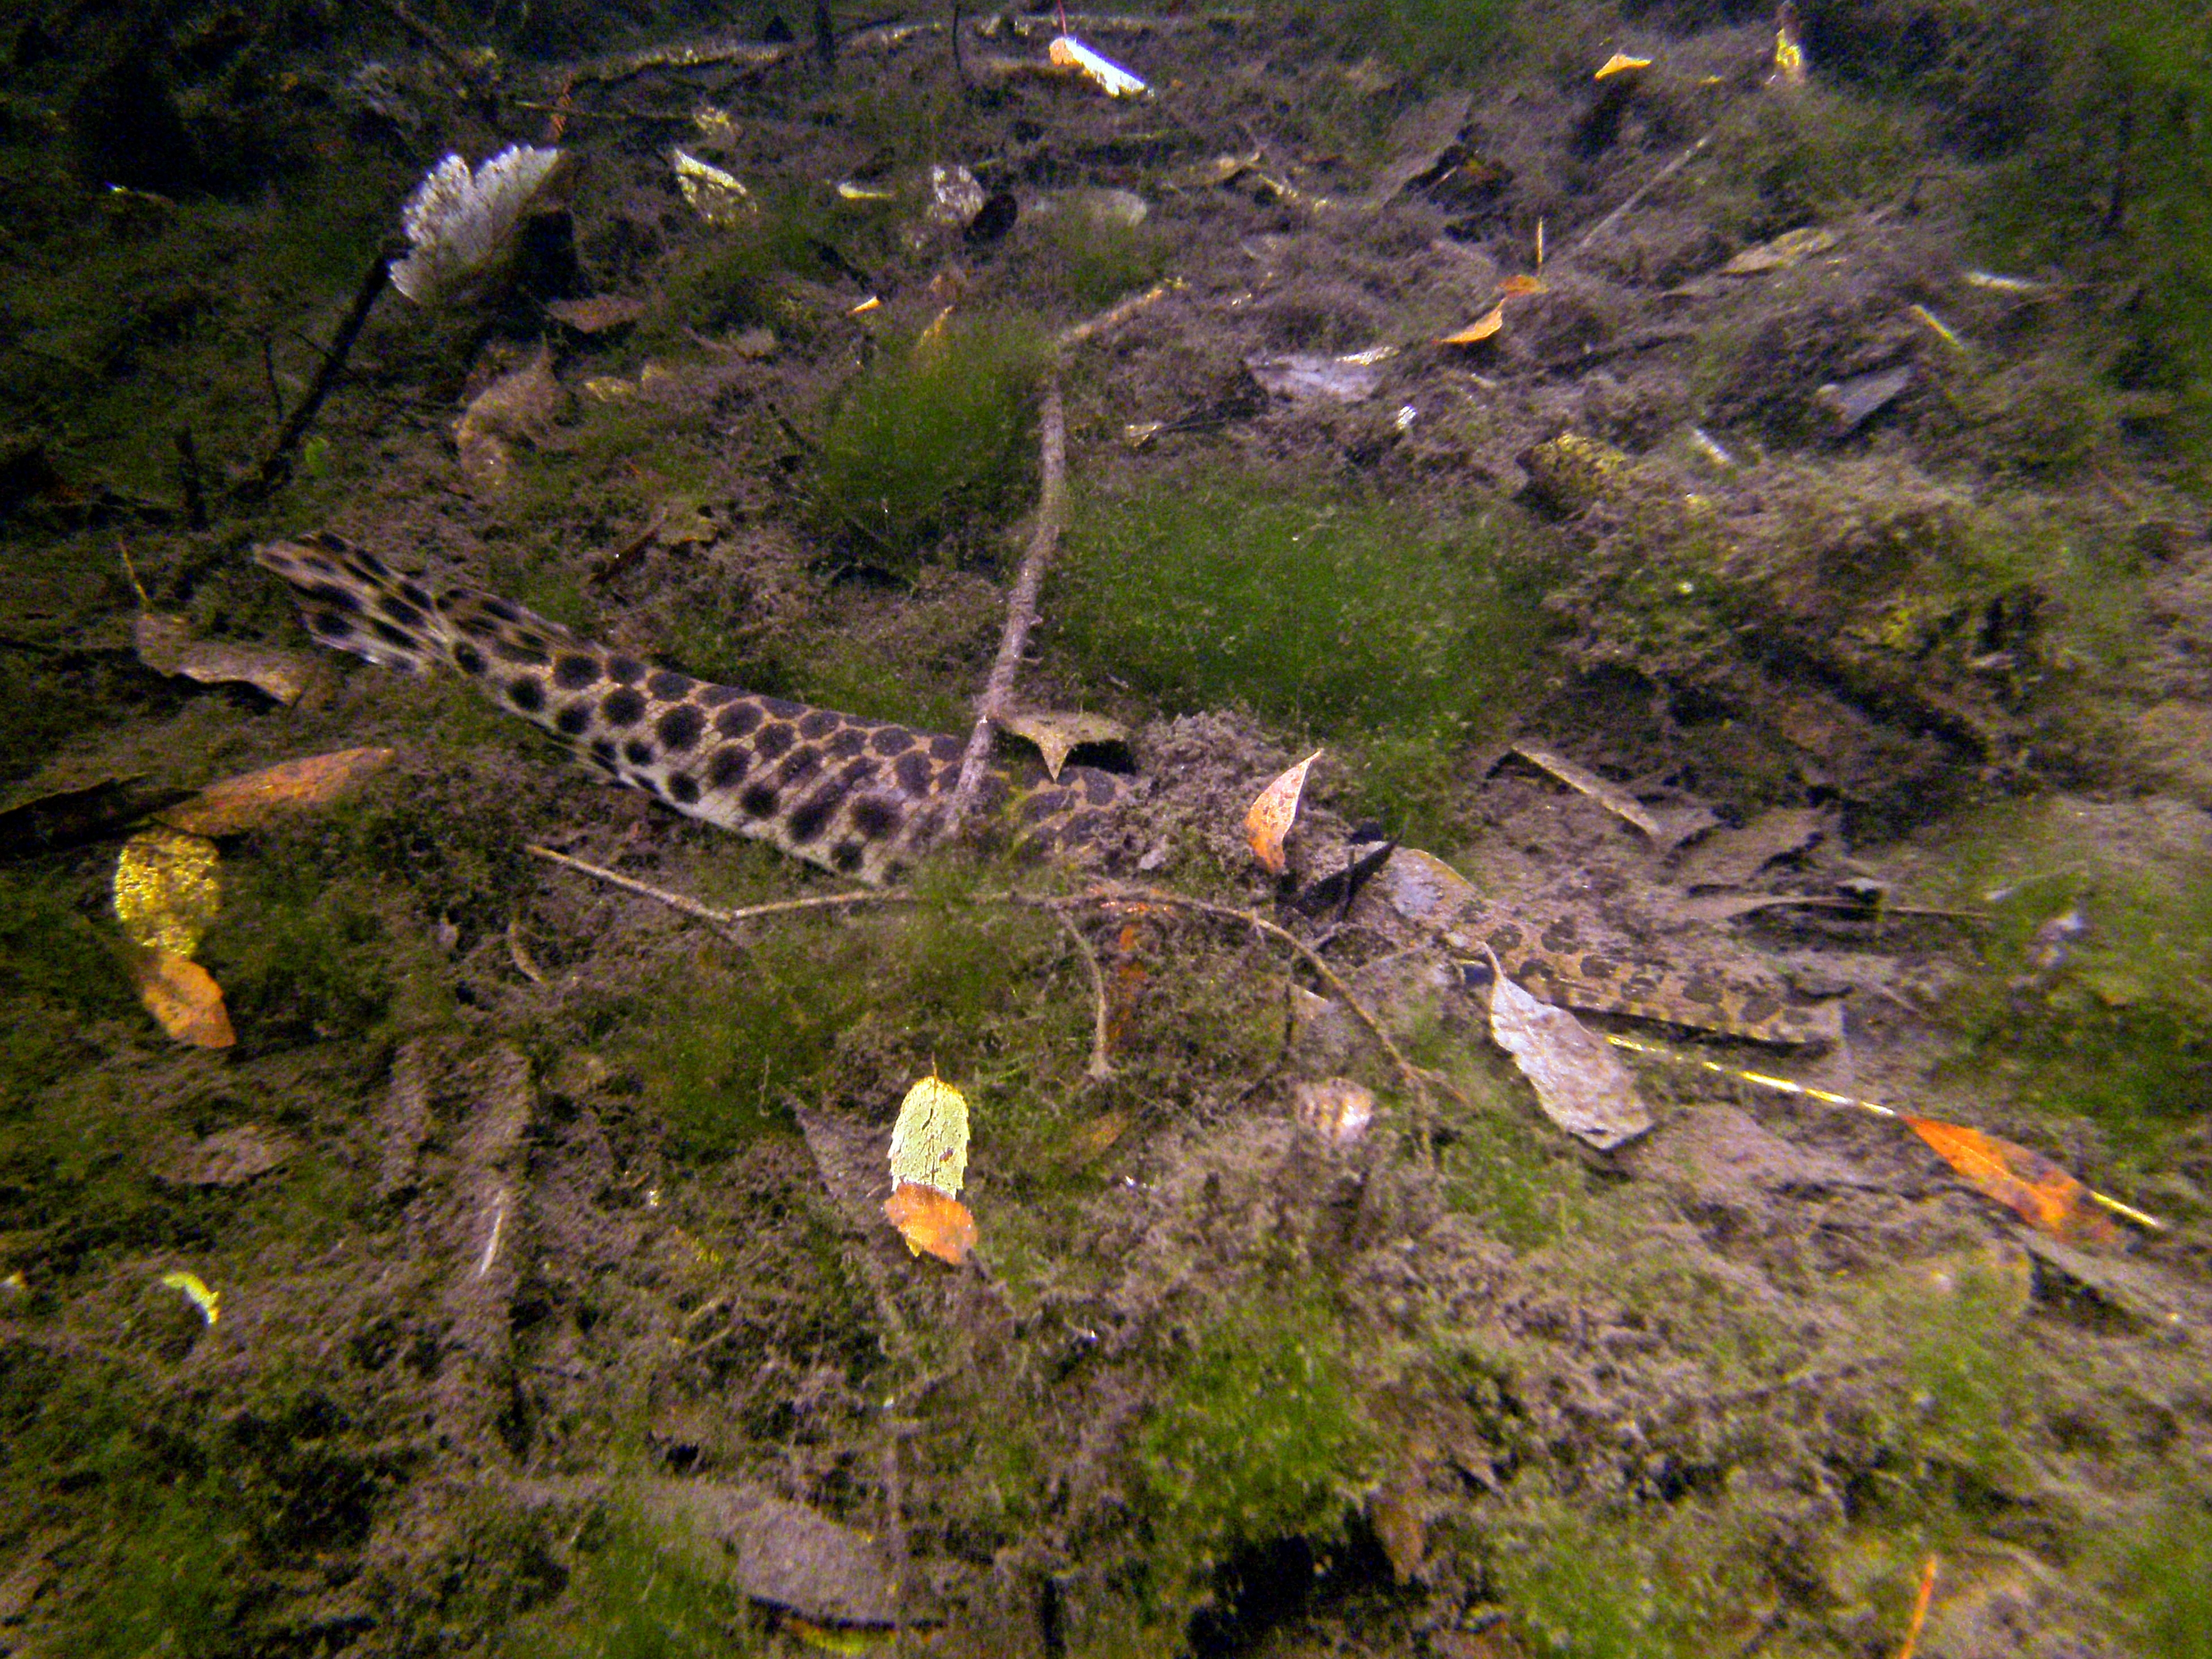 Image of Spotted gar